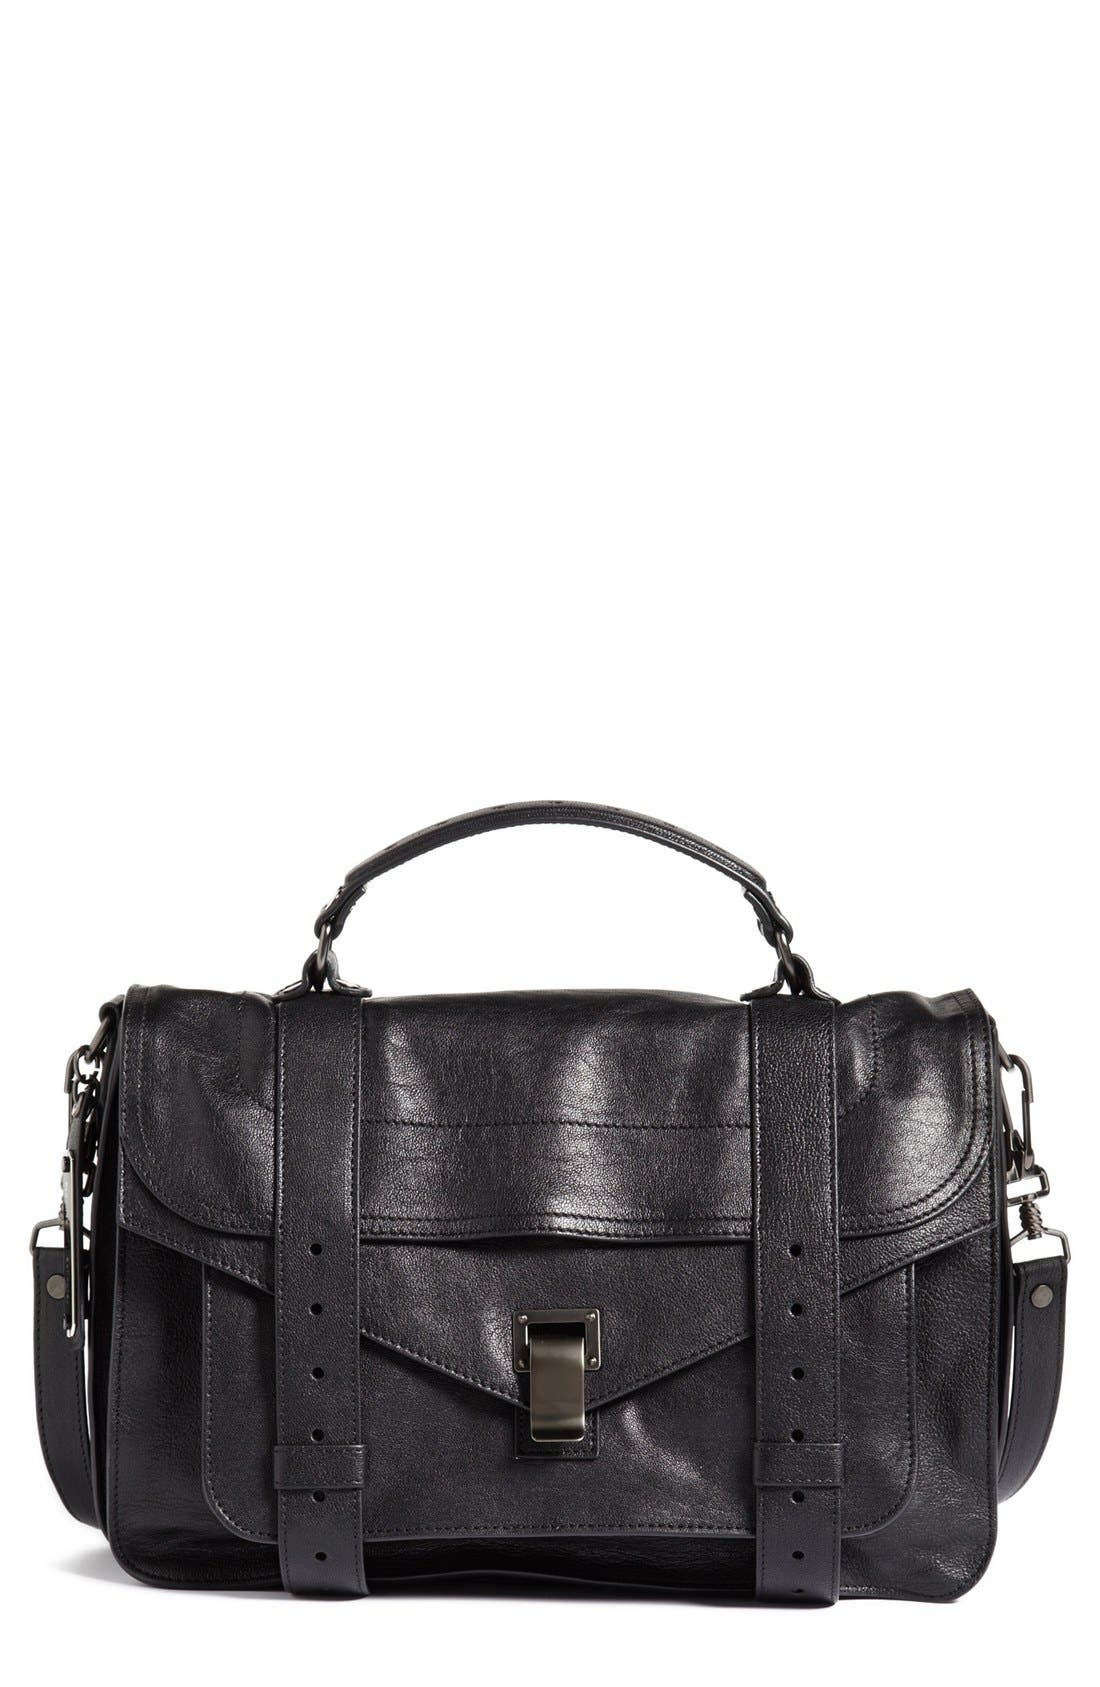 'Medium PS1' Satchel,                             Main thumbnail 1, color,                             BLACK